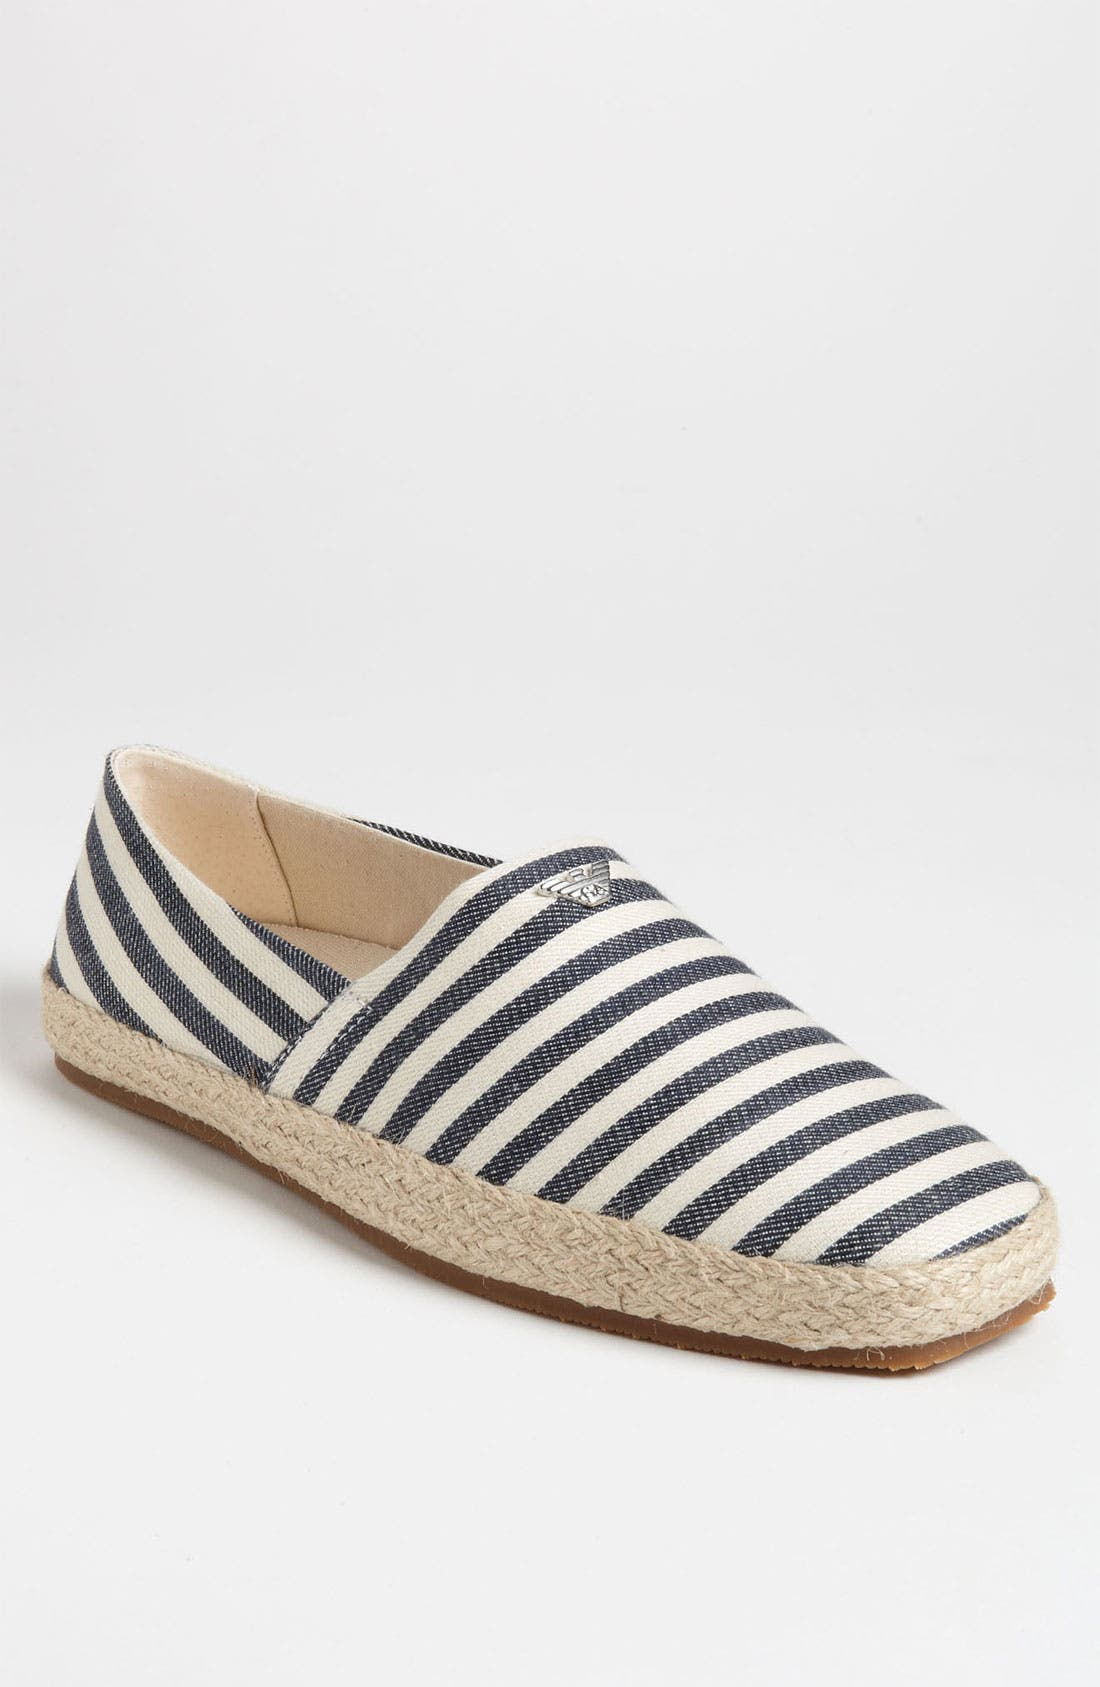 Alternate Image 1 Selected - Armani Jeans Espadrille